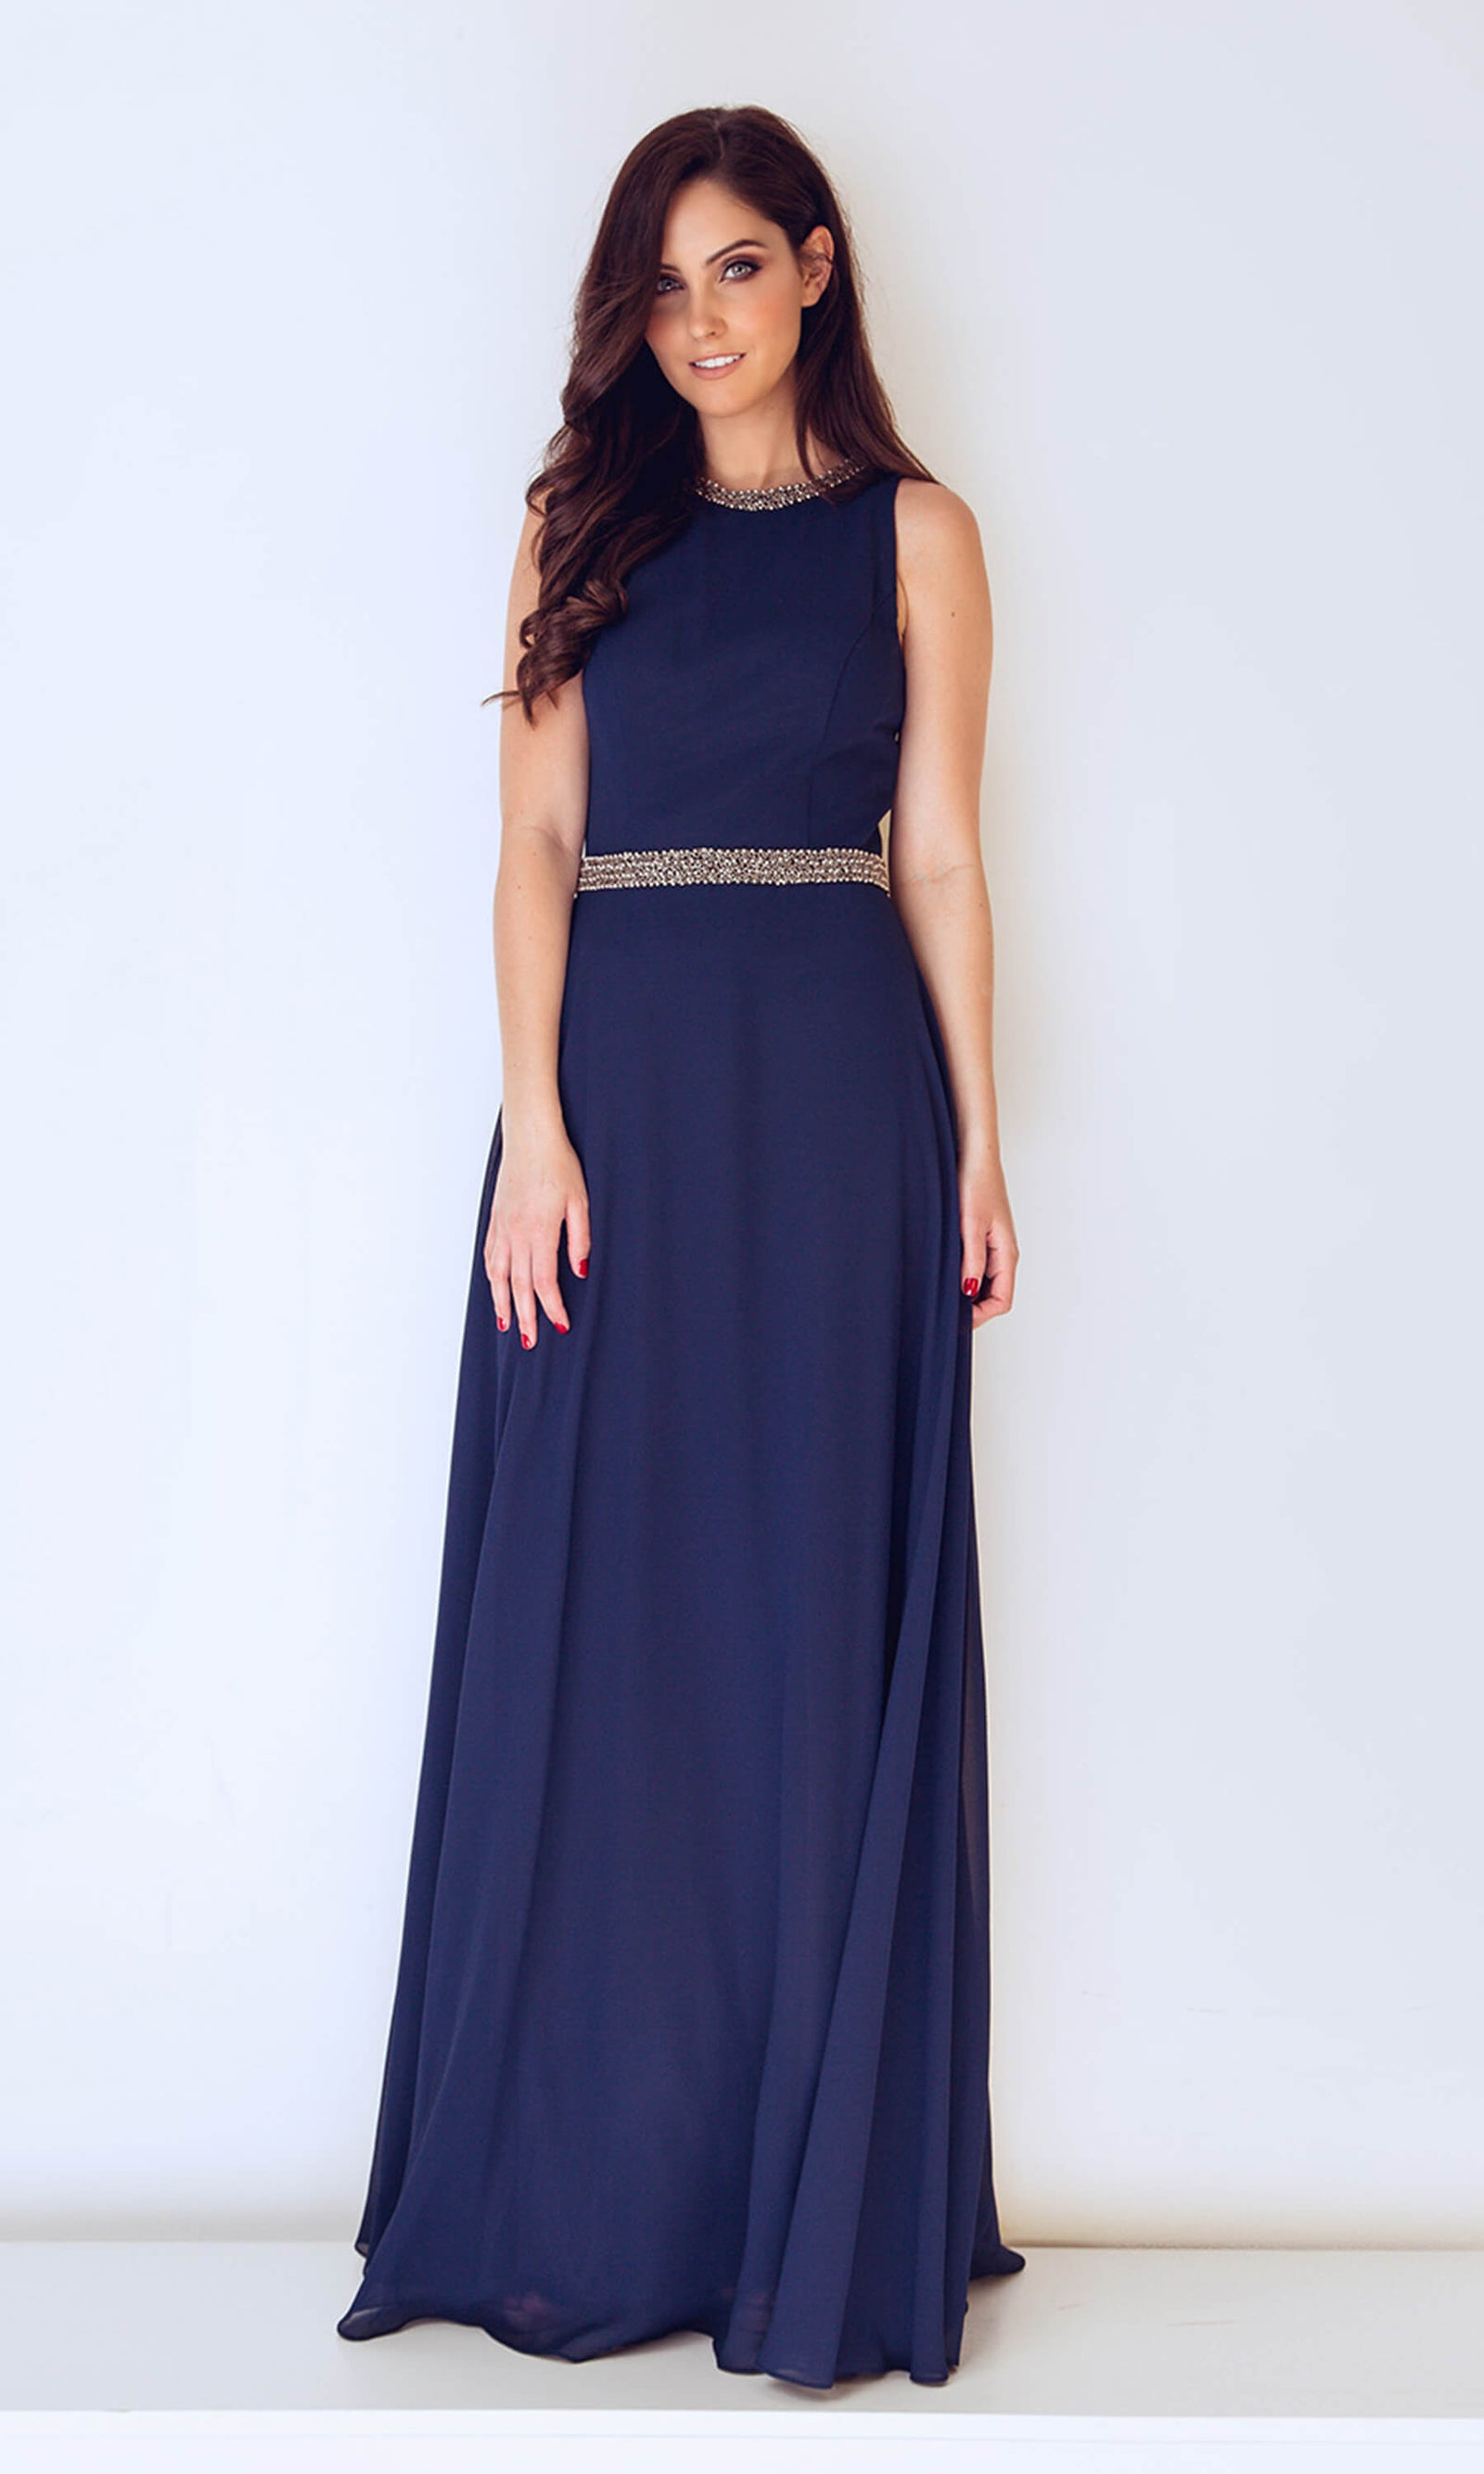 1013229 Navy Dynasty High Neckline Evening Dress - Fab Frocks